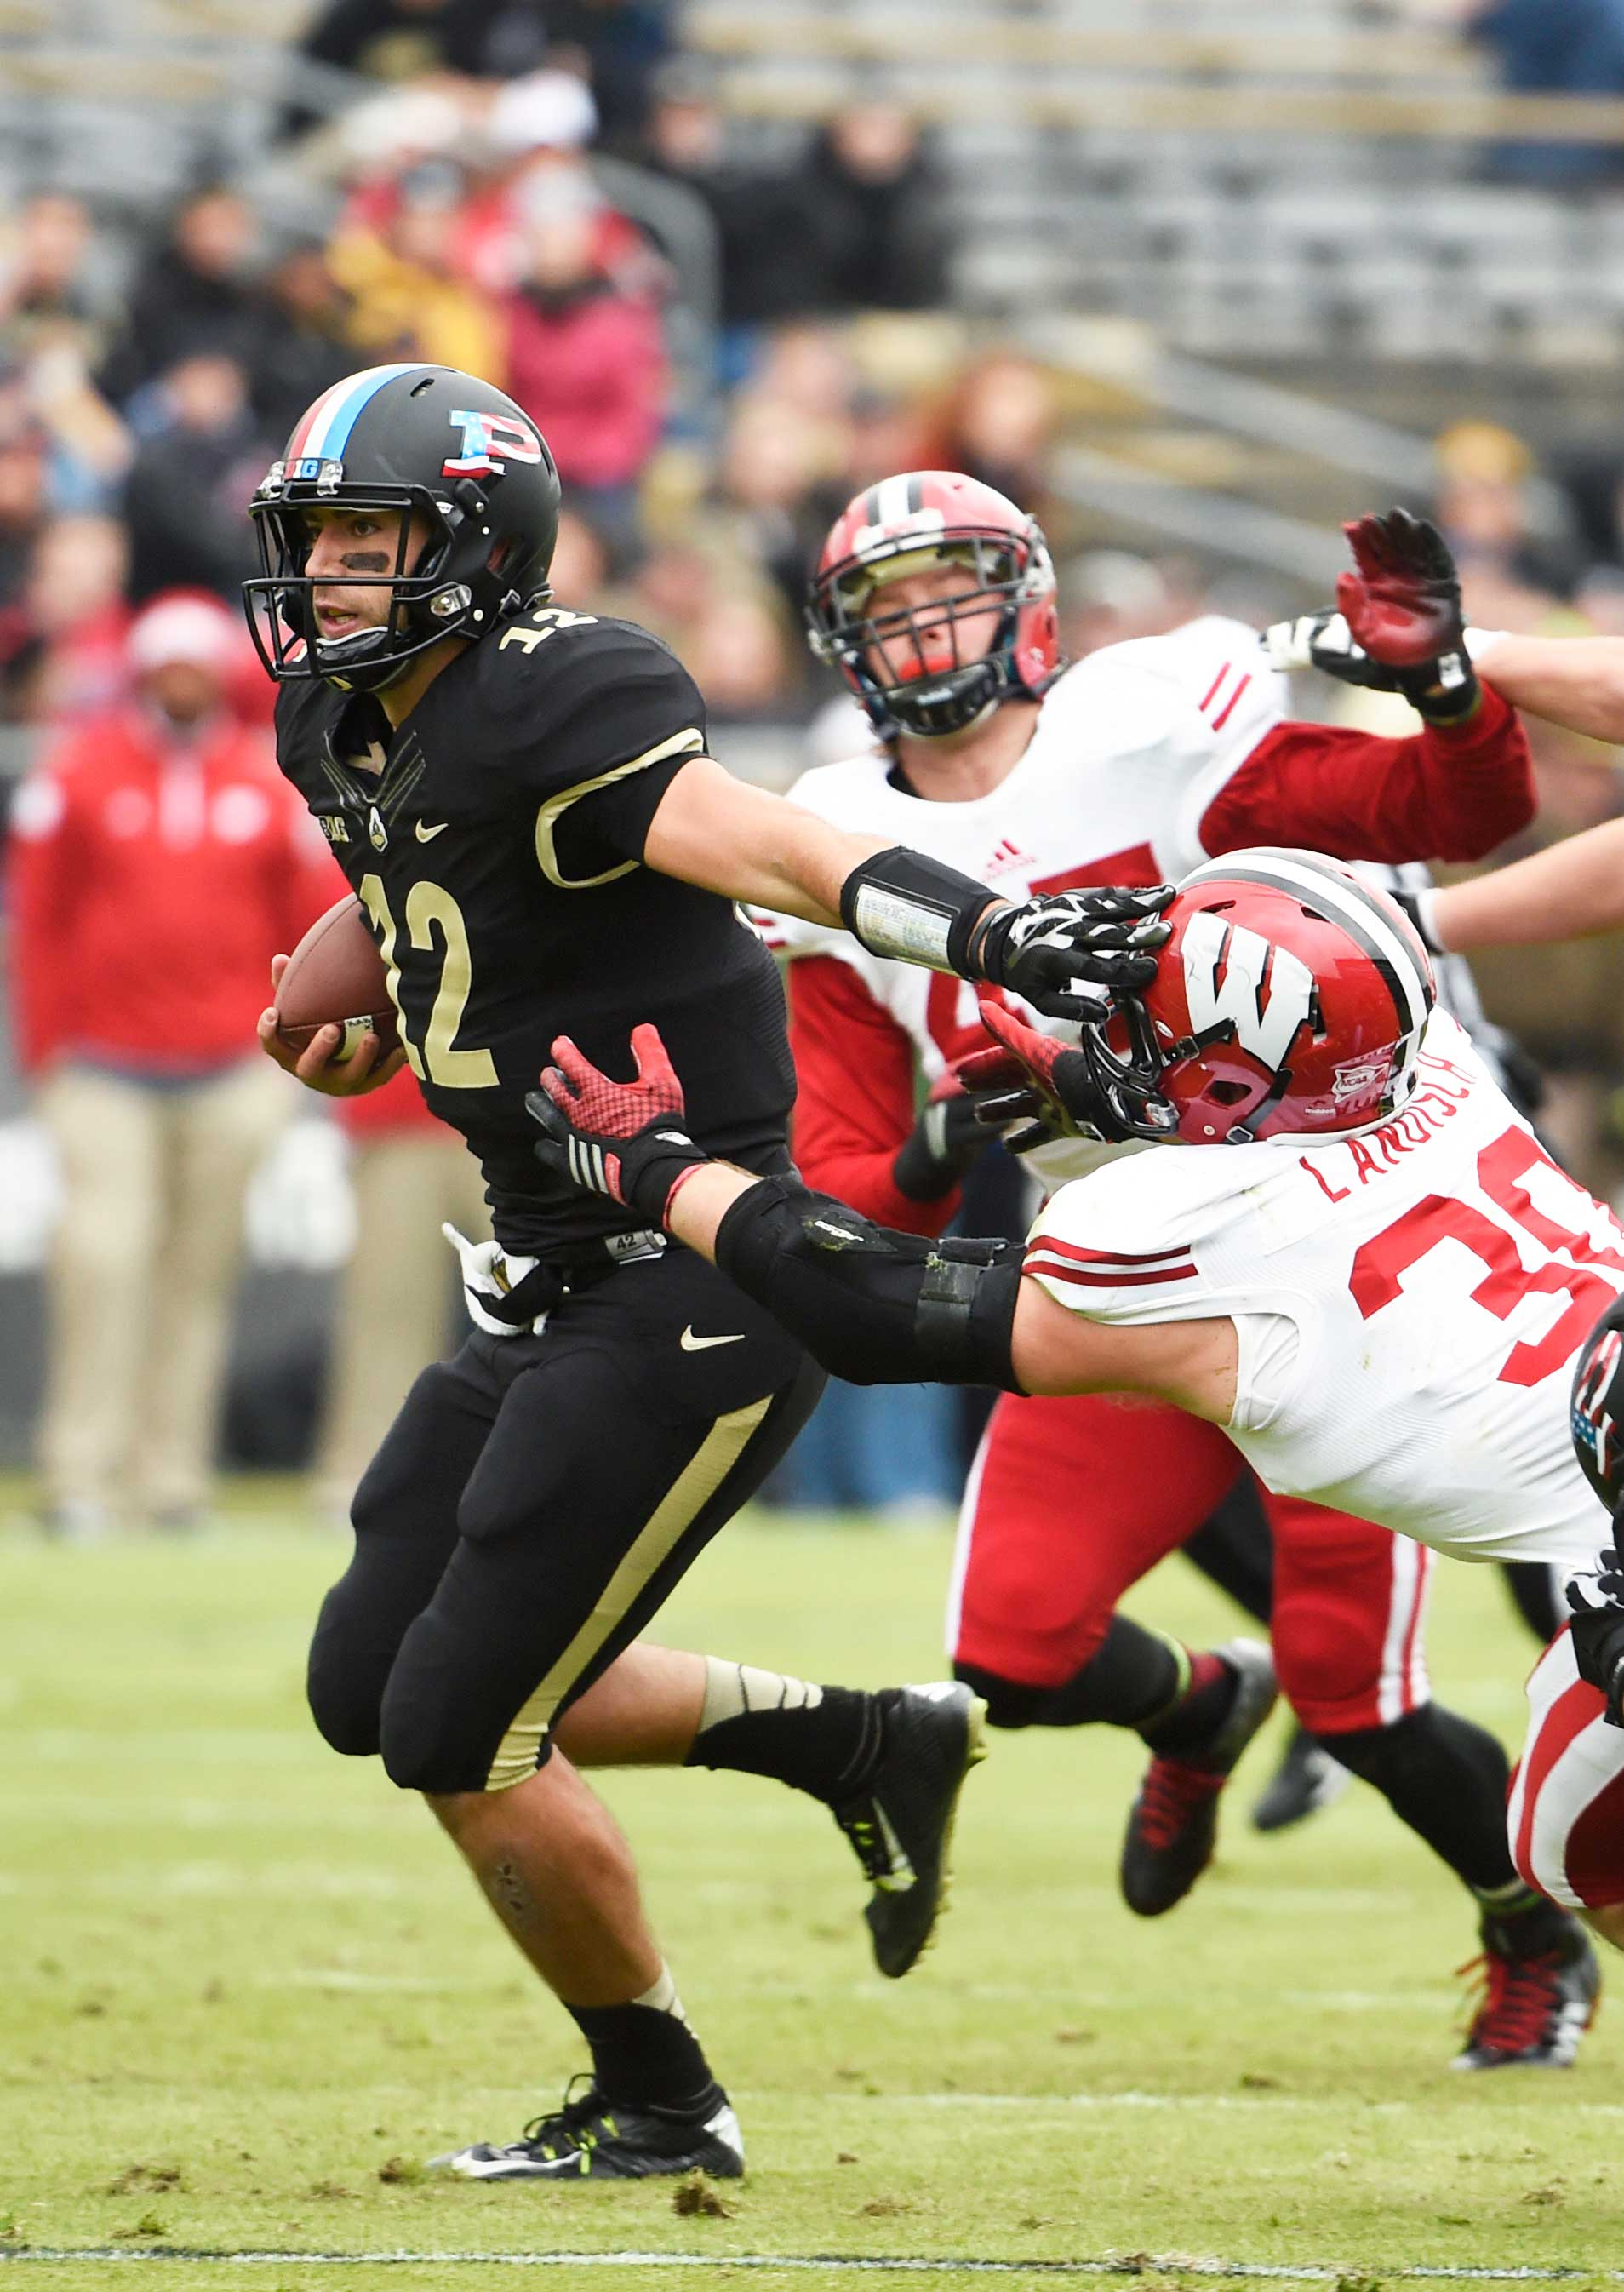 Purdue Boilermakers quarterback Austin Appleby (12) runs through the tackle of Wisconsin Badgers linebacker Derek Landisch (30) in the first half at Ross Ade Stadium. (Sandra Dukes-USA TODAY Sports)